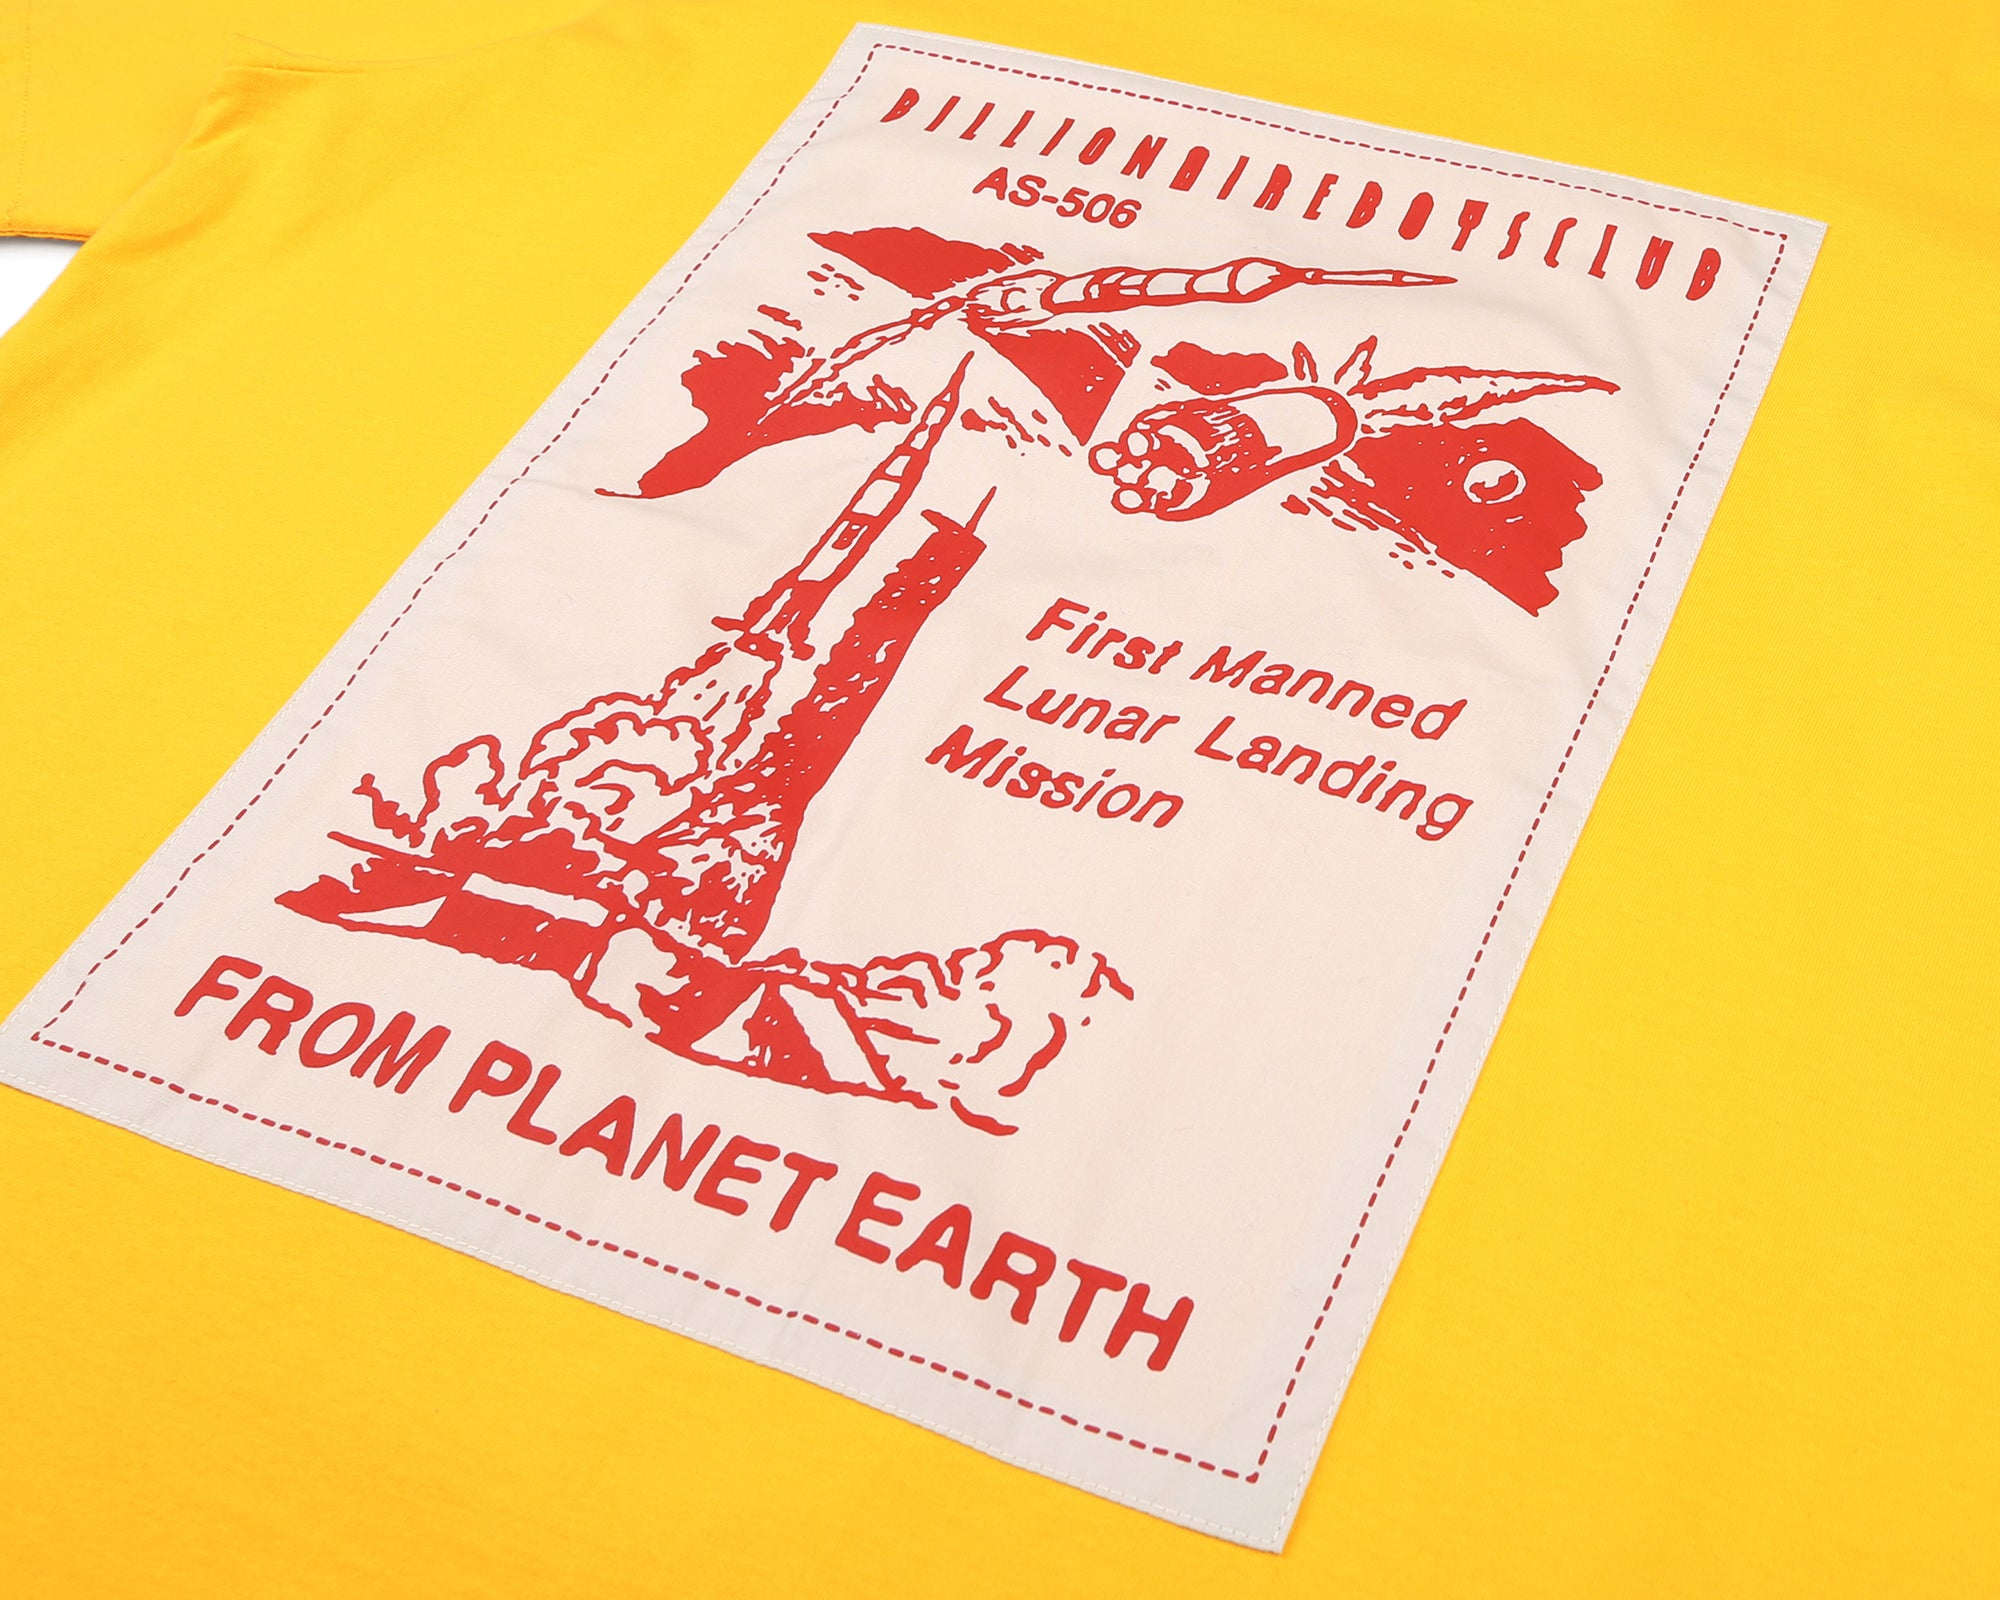 FROM PLANET EARTH PATCH S/S T-SHIRT - YELLOW